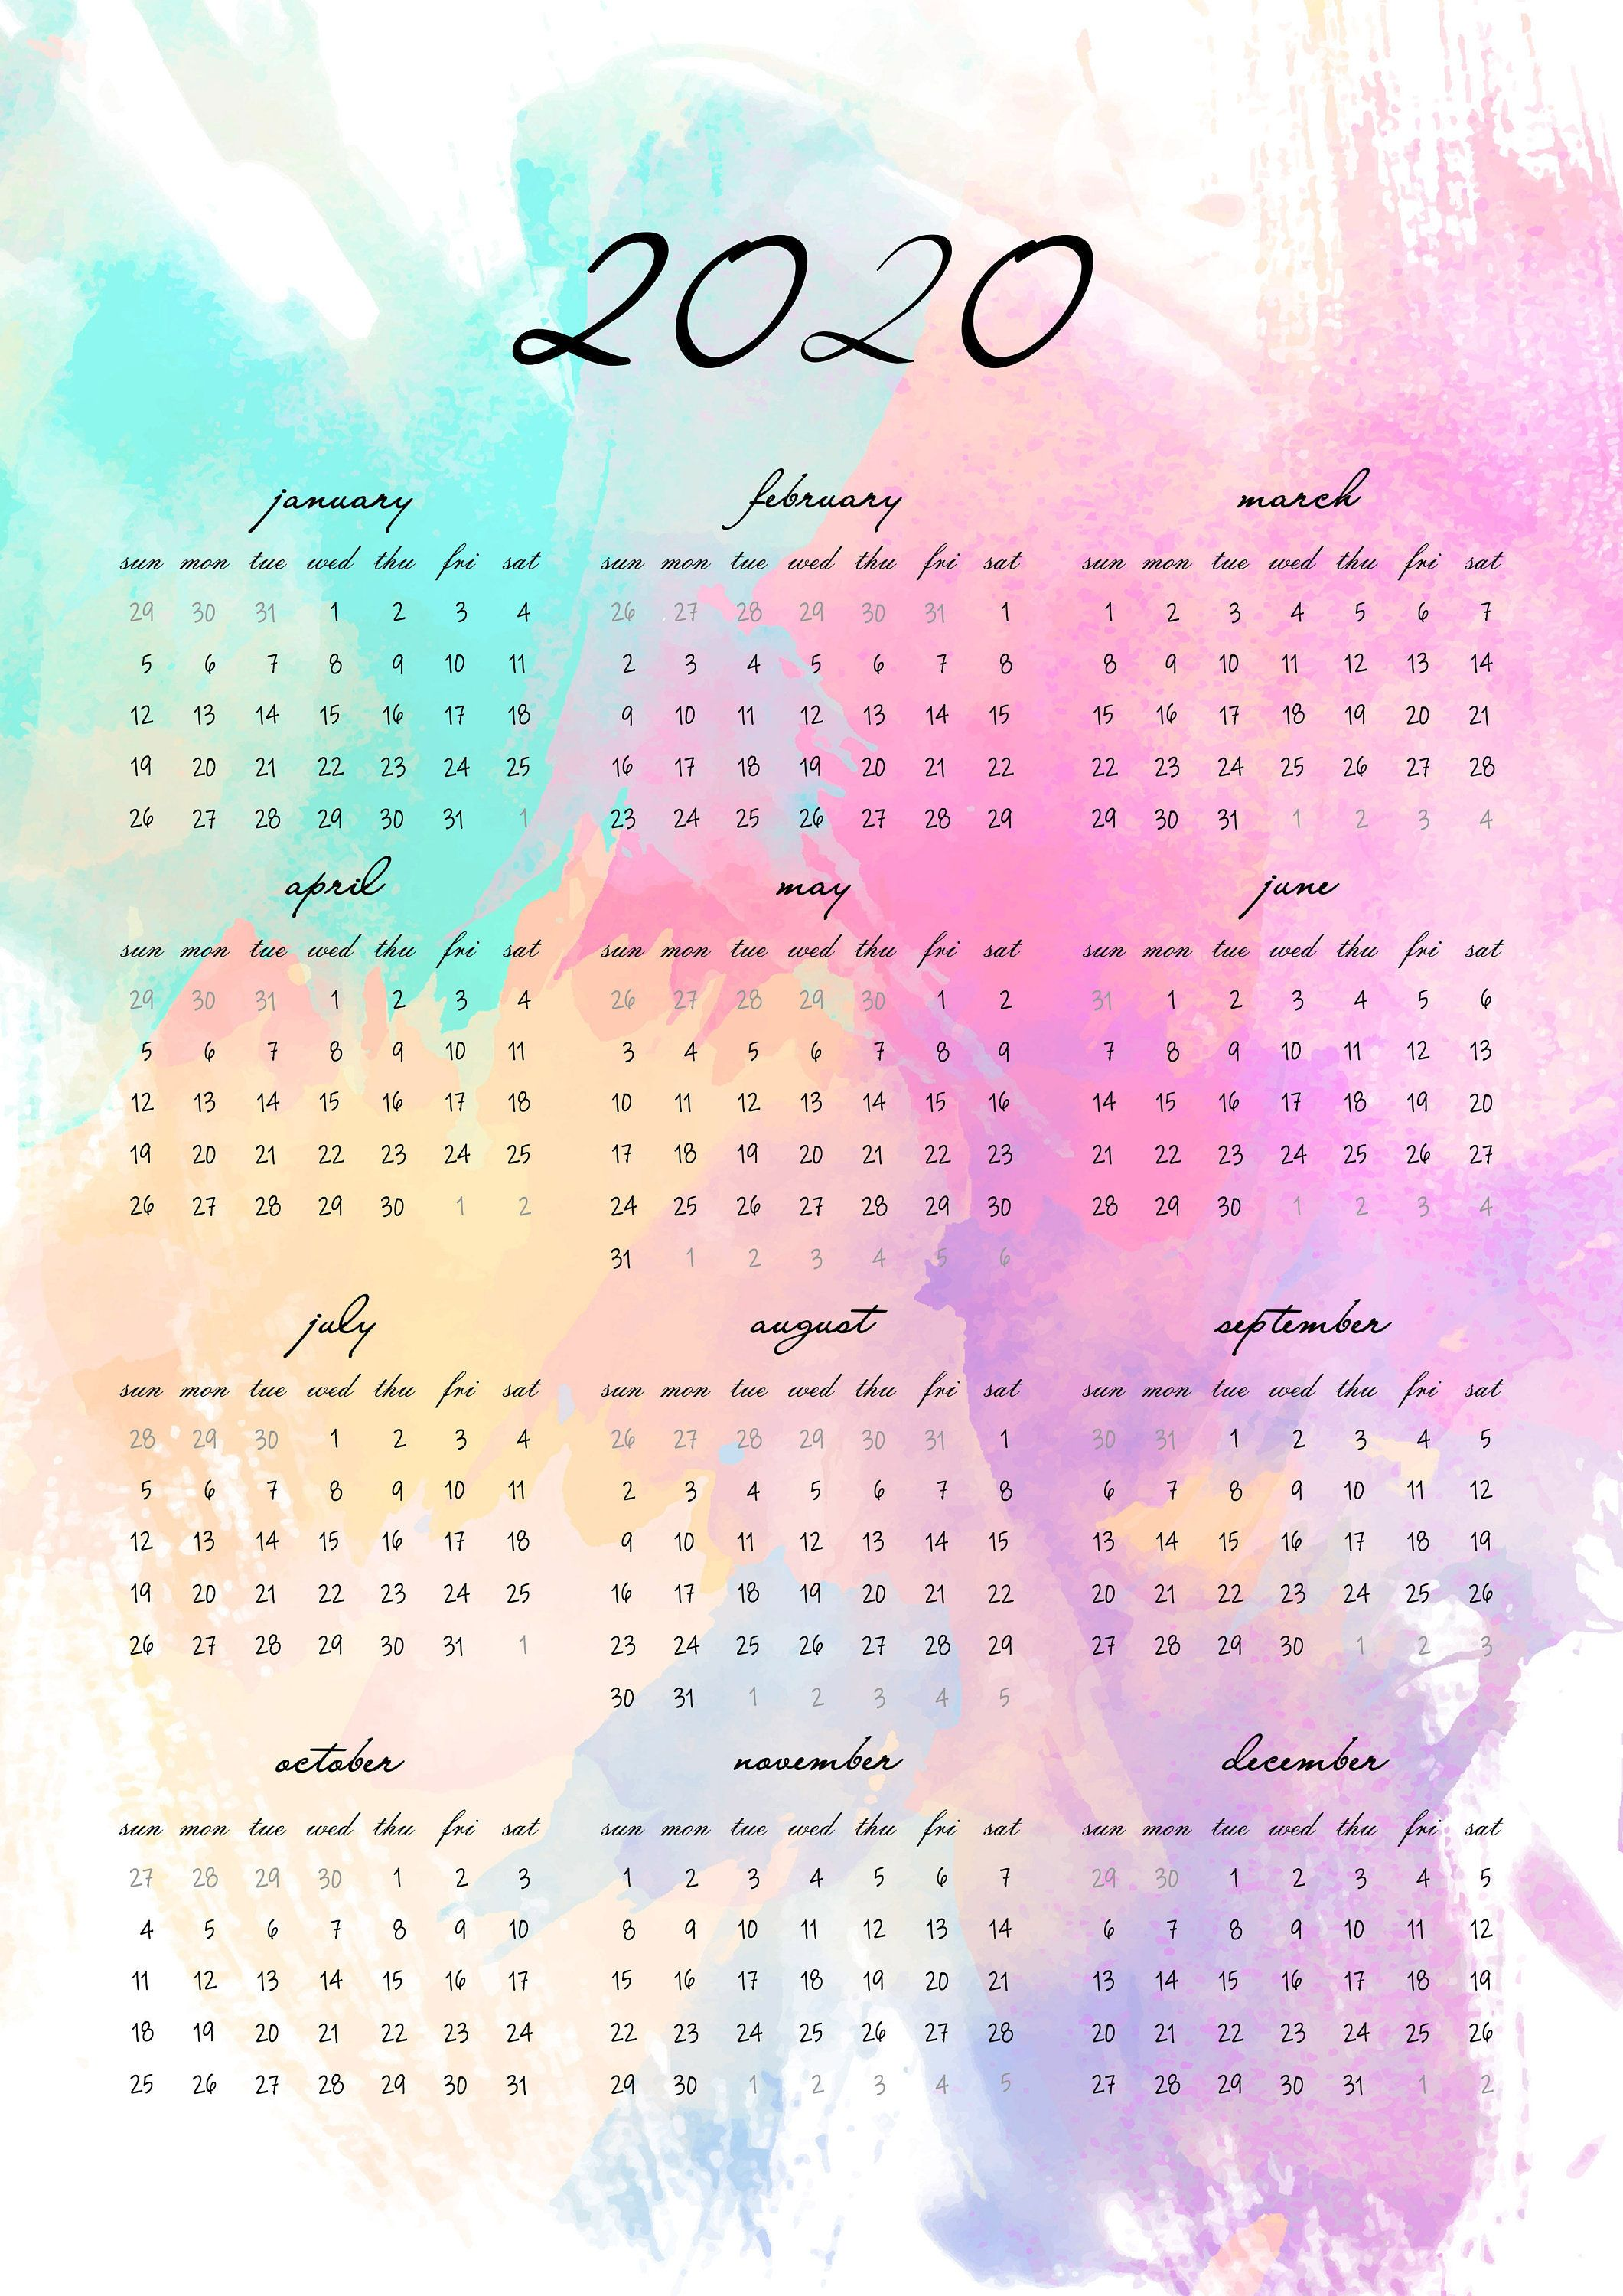 Watercolor Art 2020 Calendar Calendar 2020 Printable